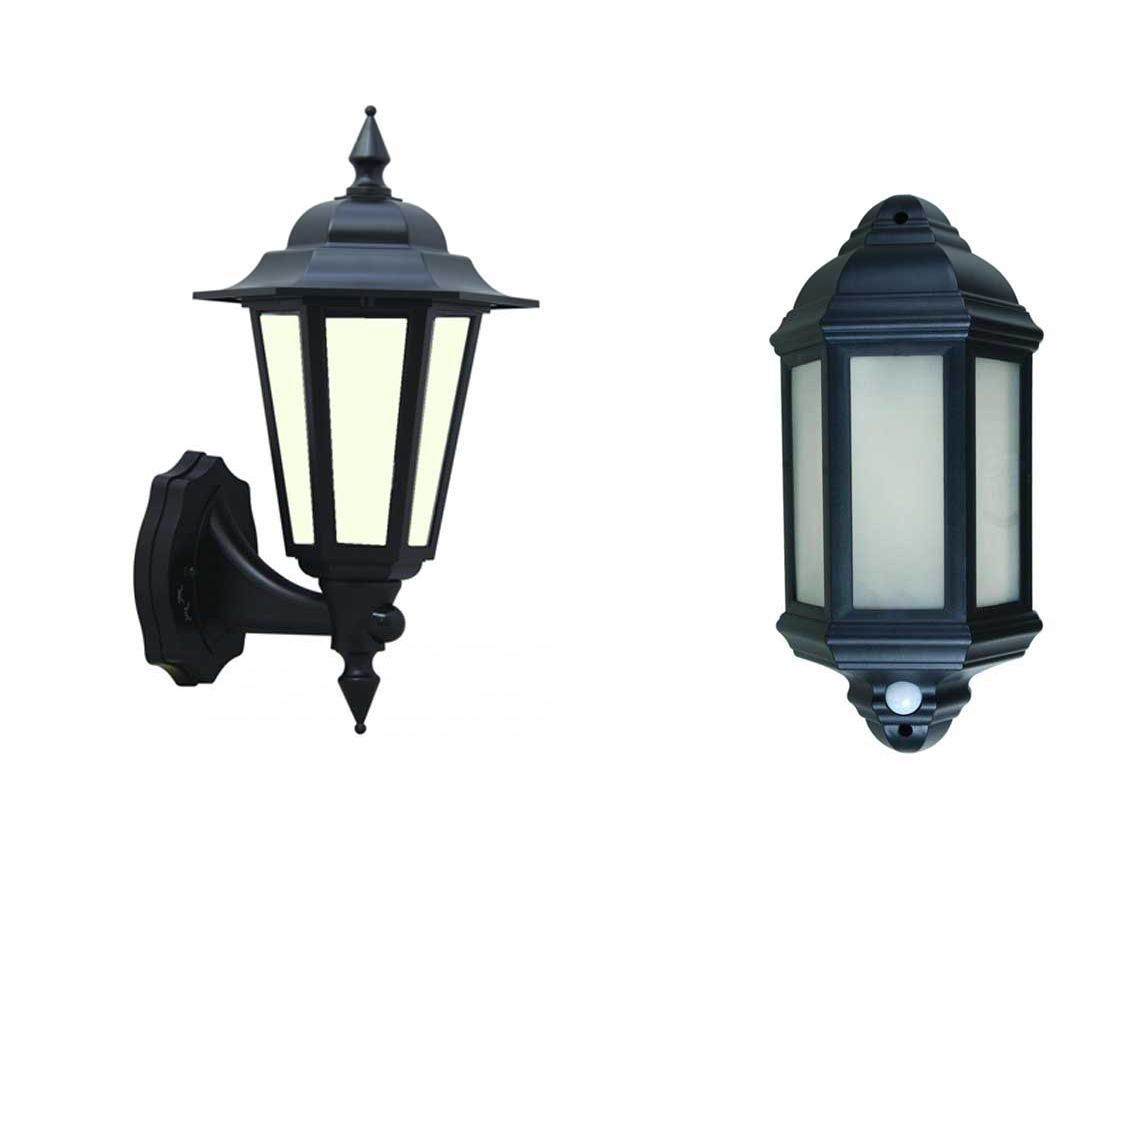 Image of: Led Outdoor Garden Wall Half Lantern Pir Black Ip44 External 7 Watt